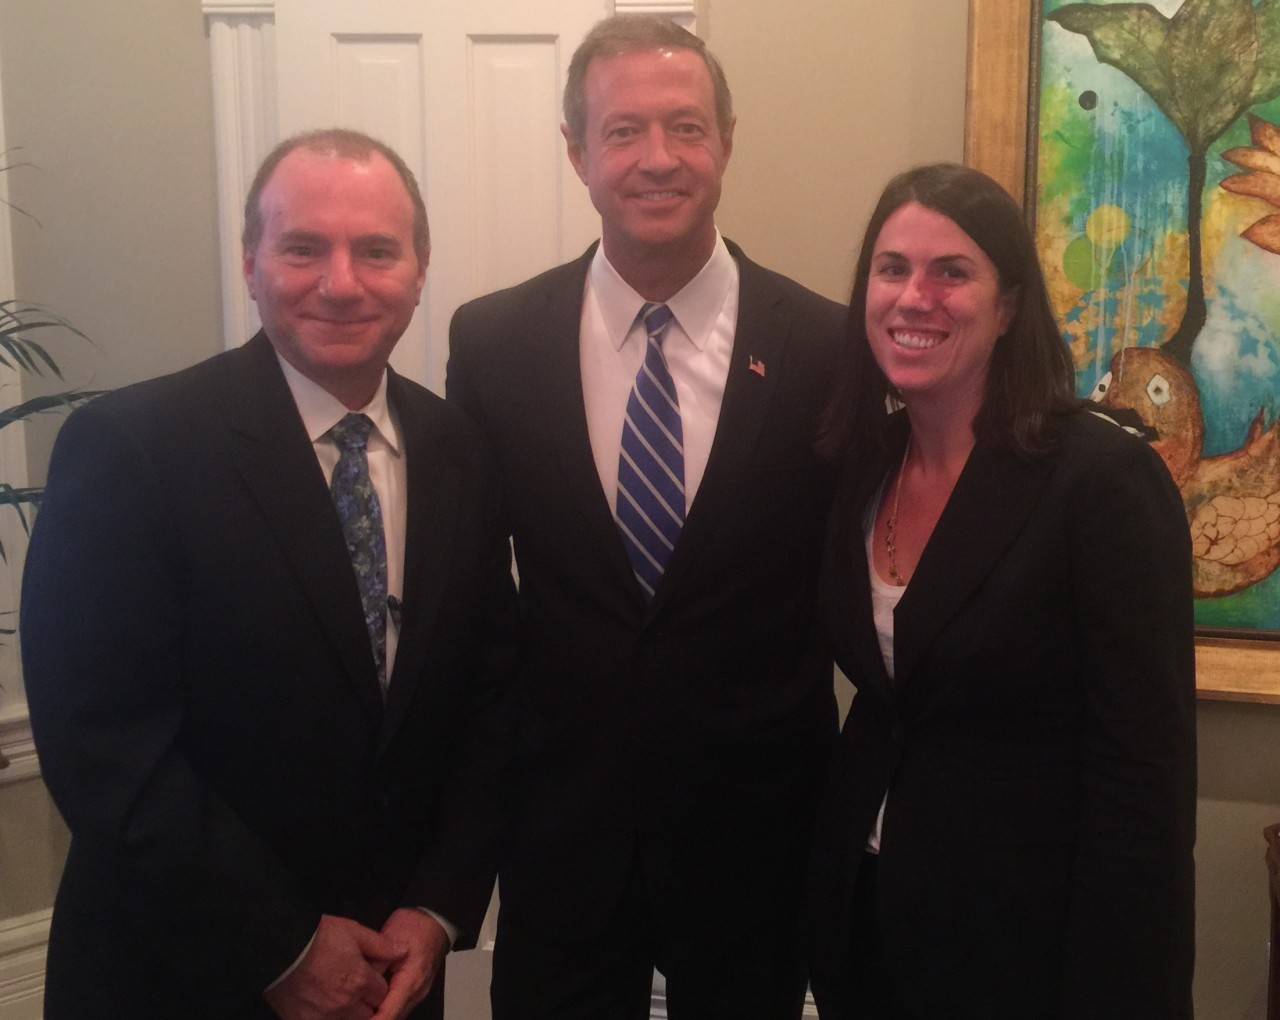 Partners meet with U.S. Presidential Candidate Martin O'Malley